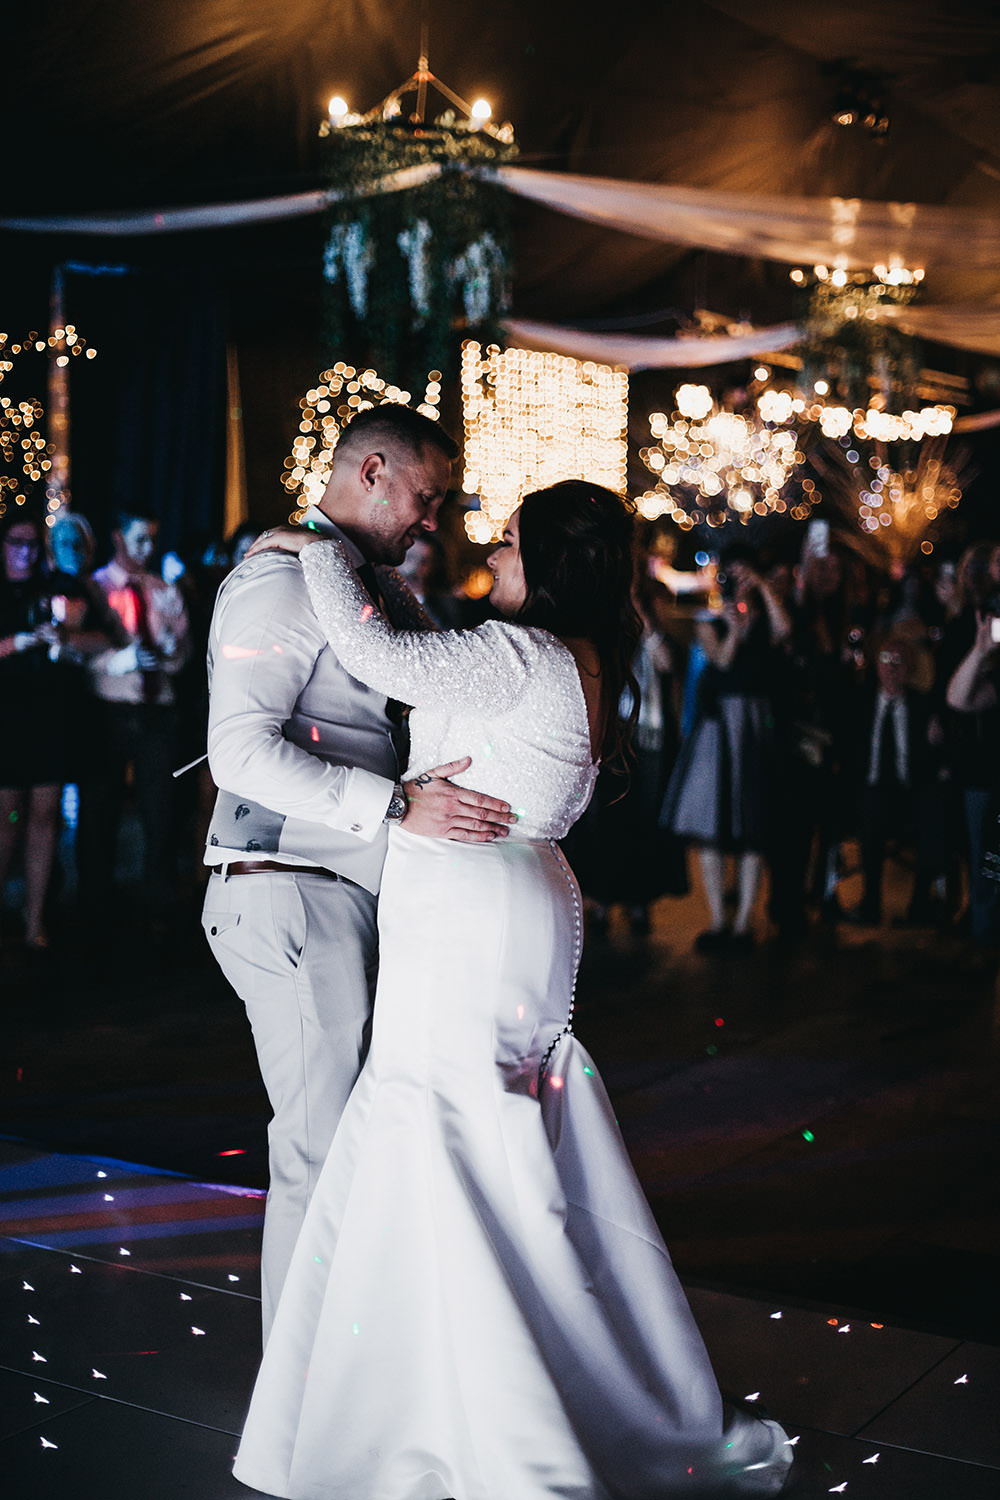 Bride Bridal Separates Sparkly Long Sleeve Fish Tail Button Back Groom Cream Waistcoat Suit Big Barn Wedding Ashley The Vedrines Photography